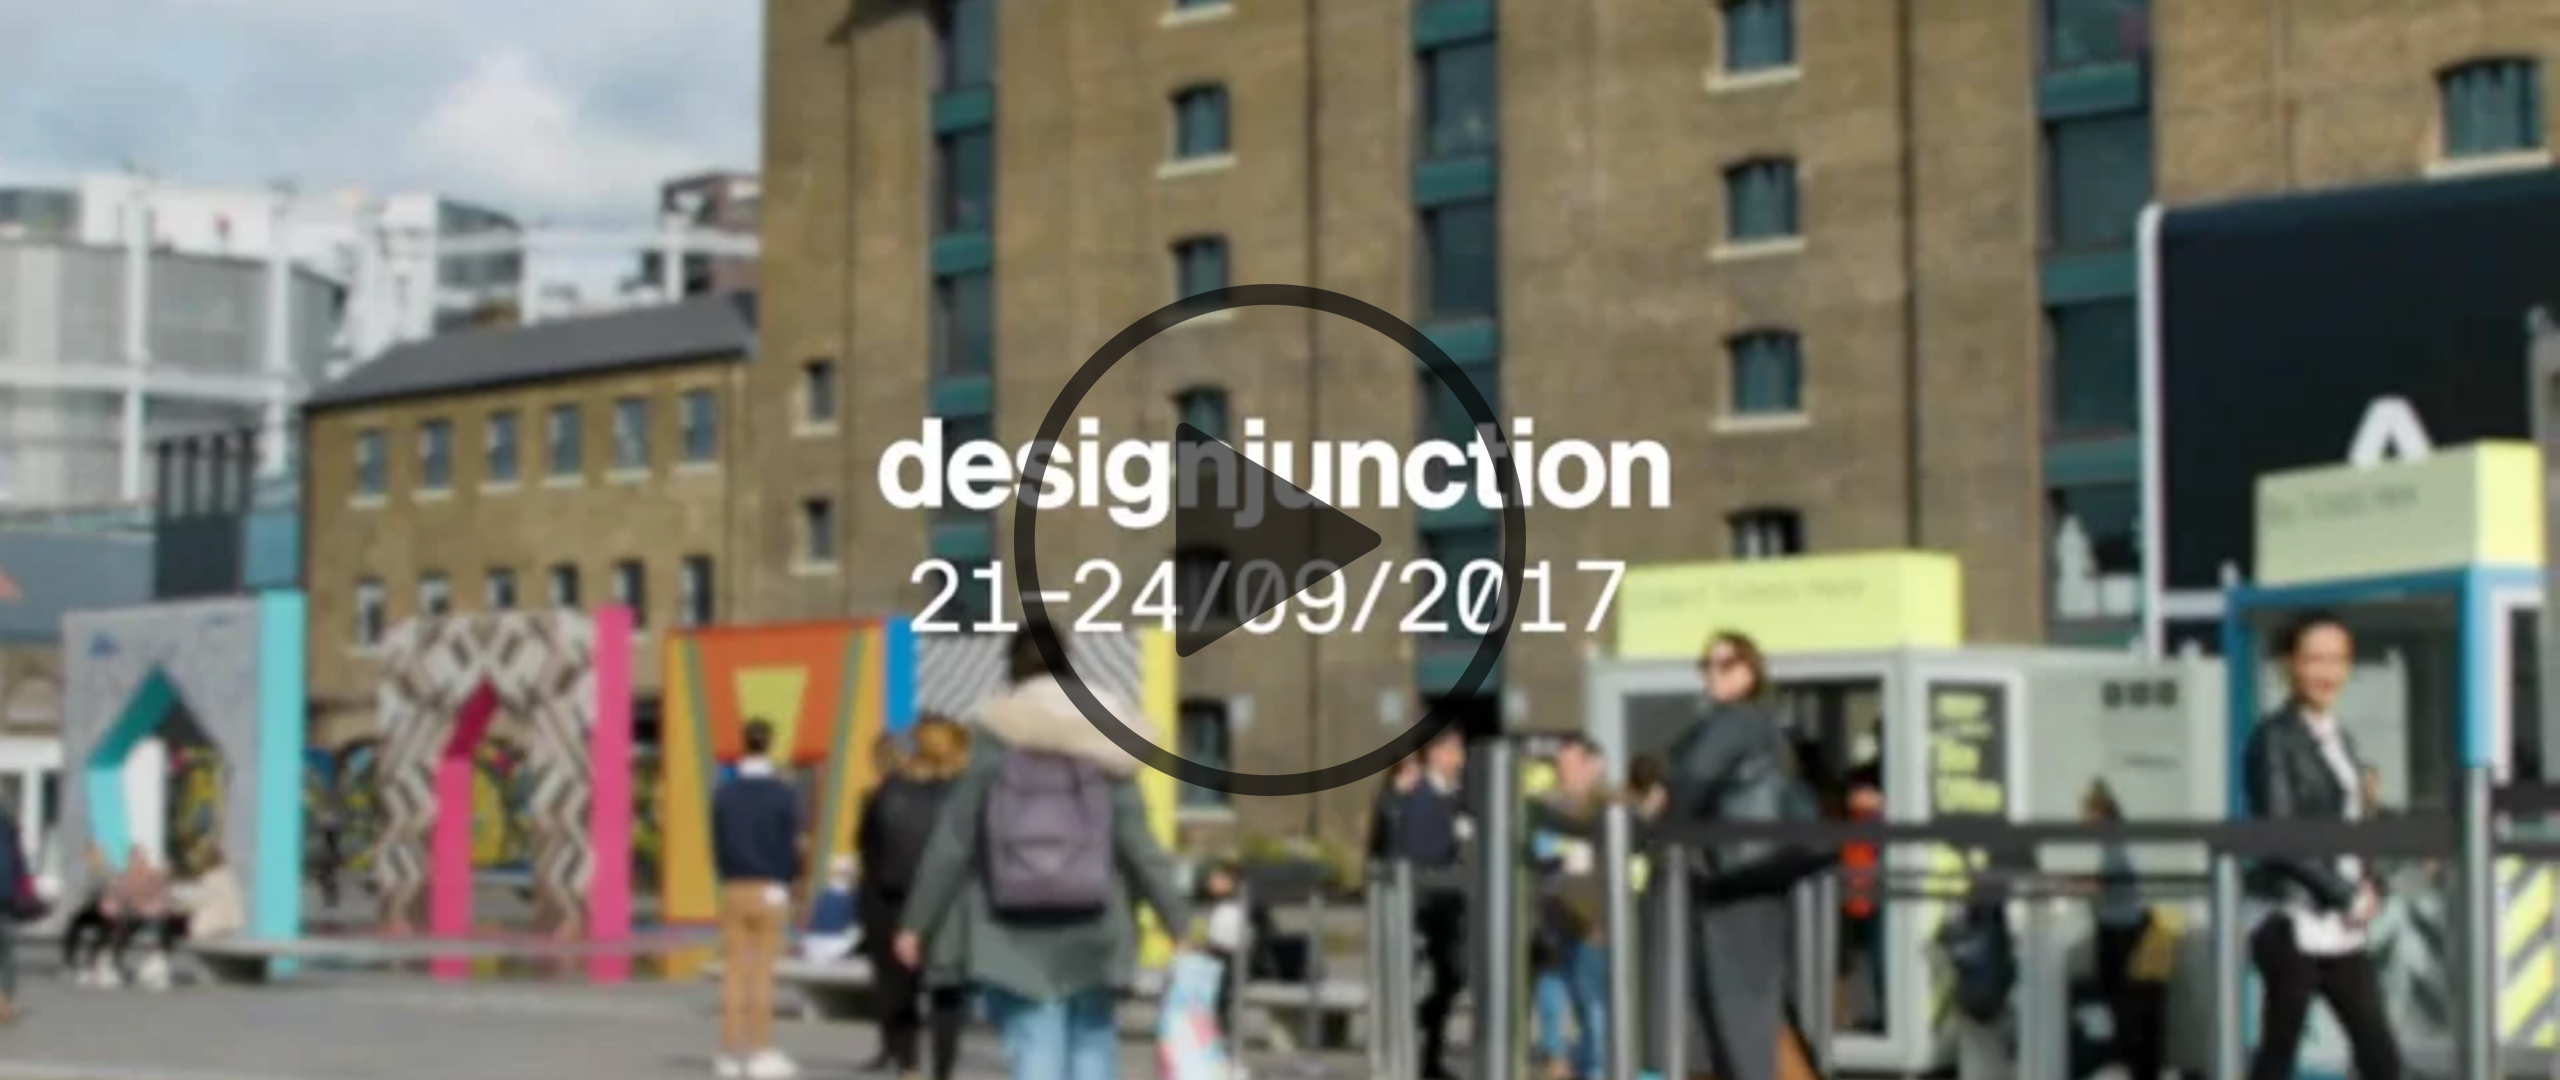 designjunction2017 highlights